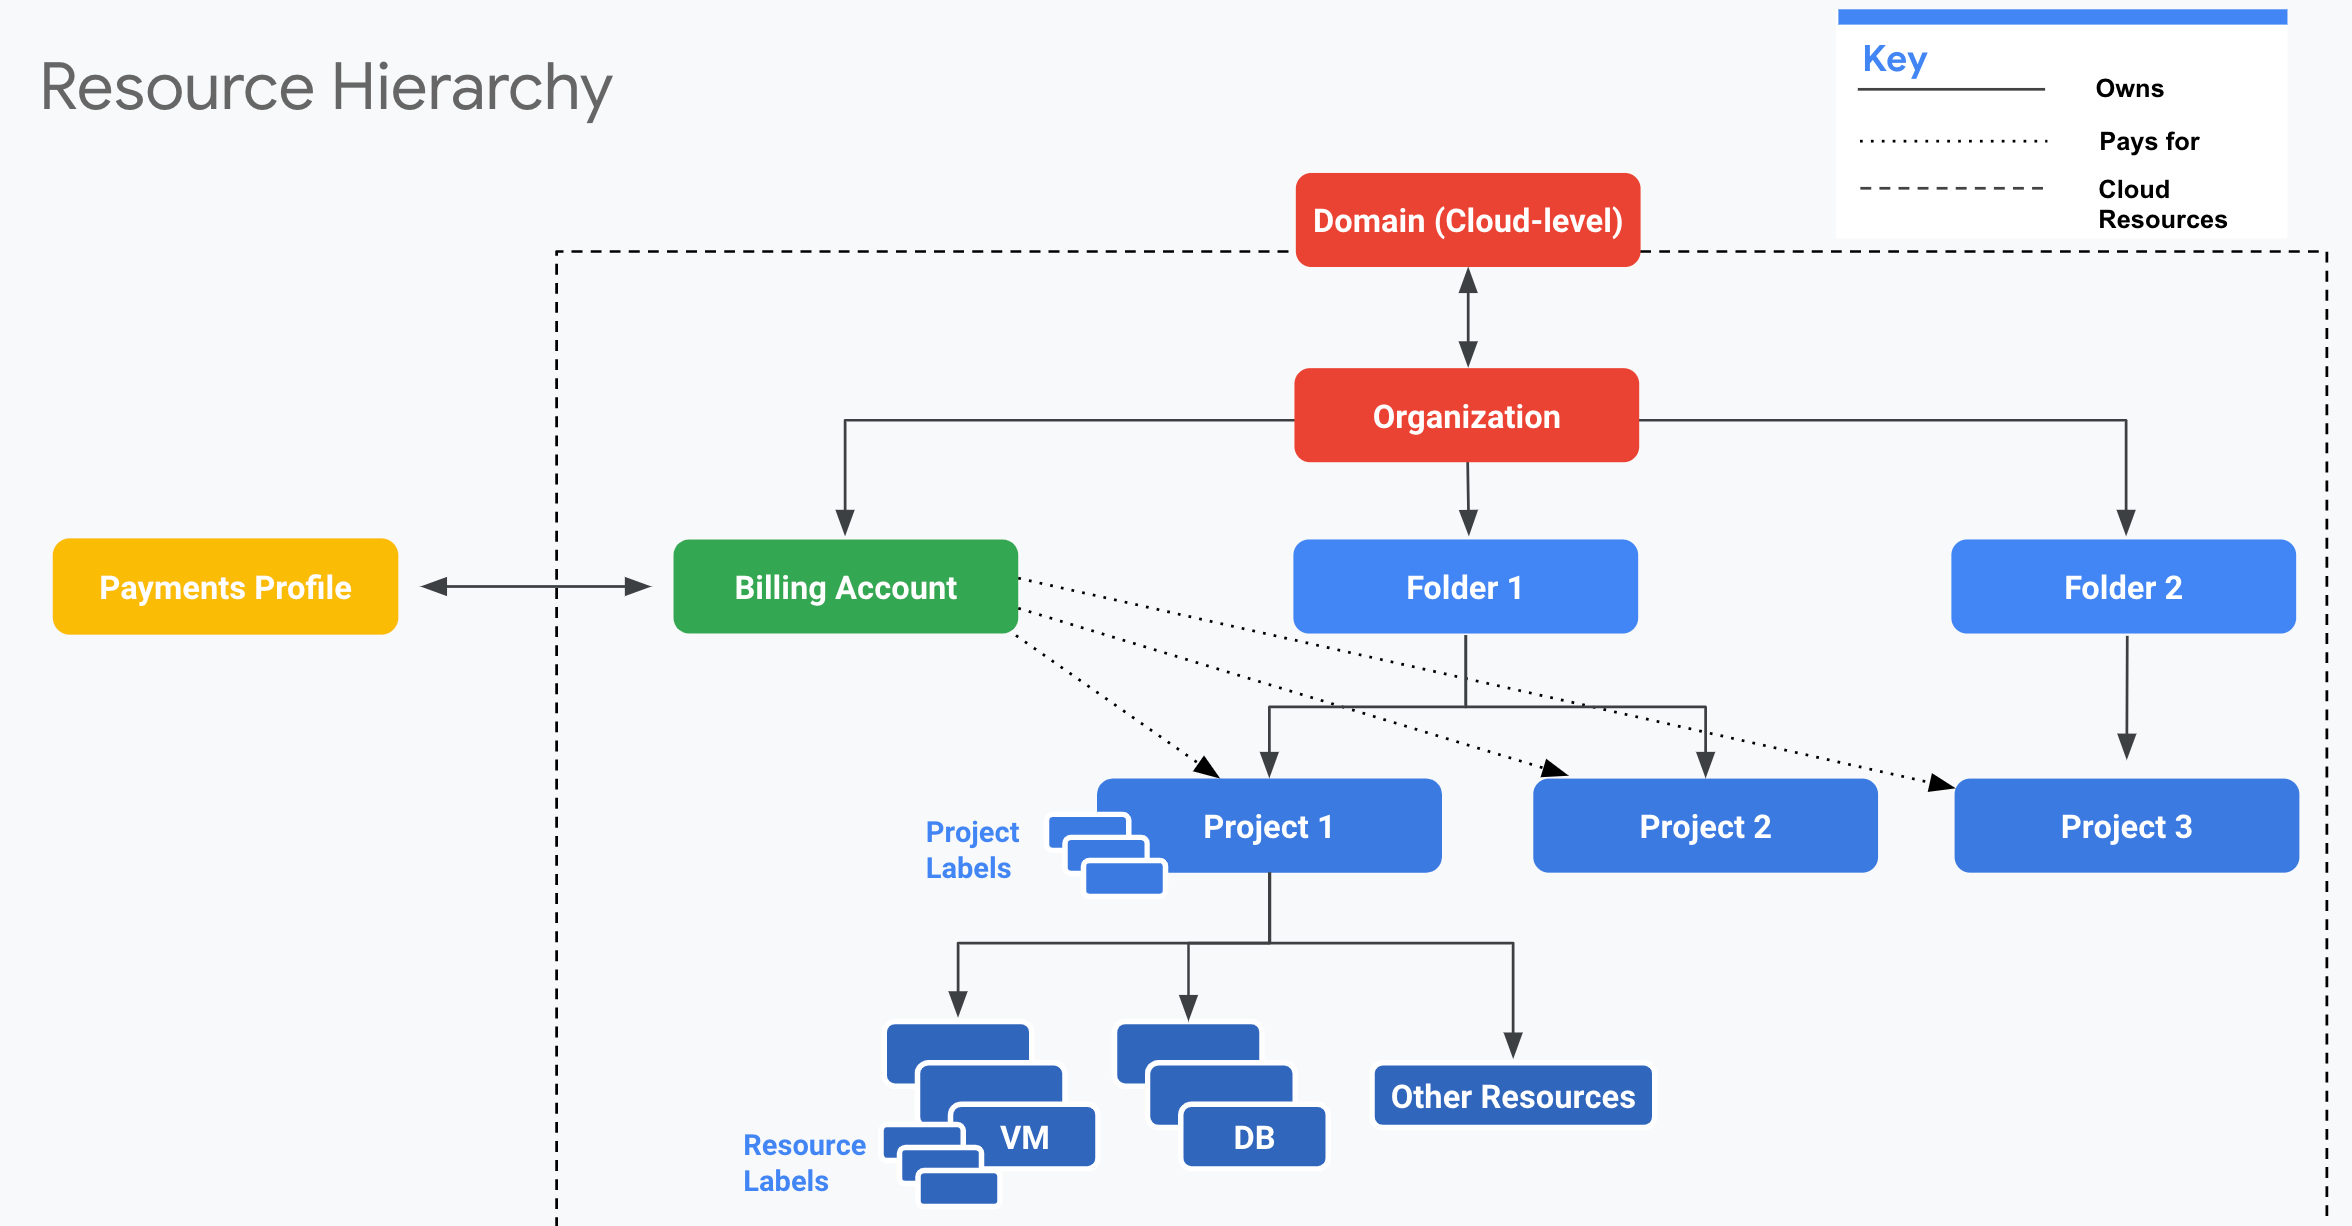 images/google-cloud-storage-resource-hierarchy.png